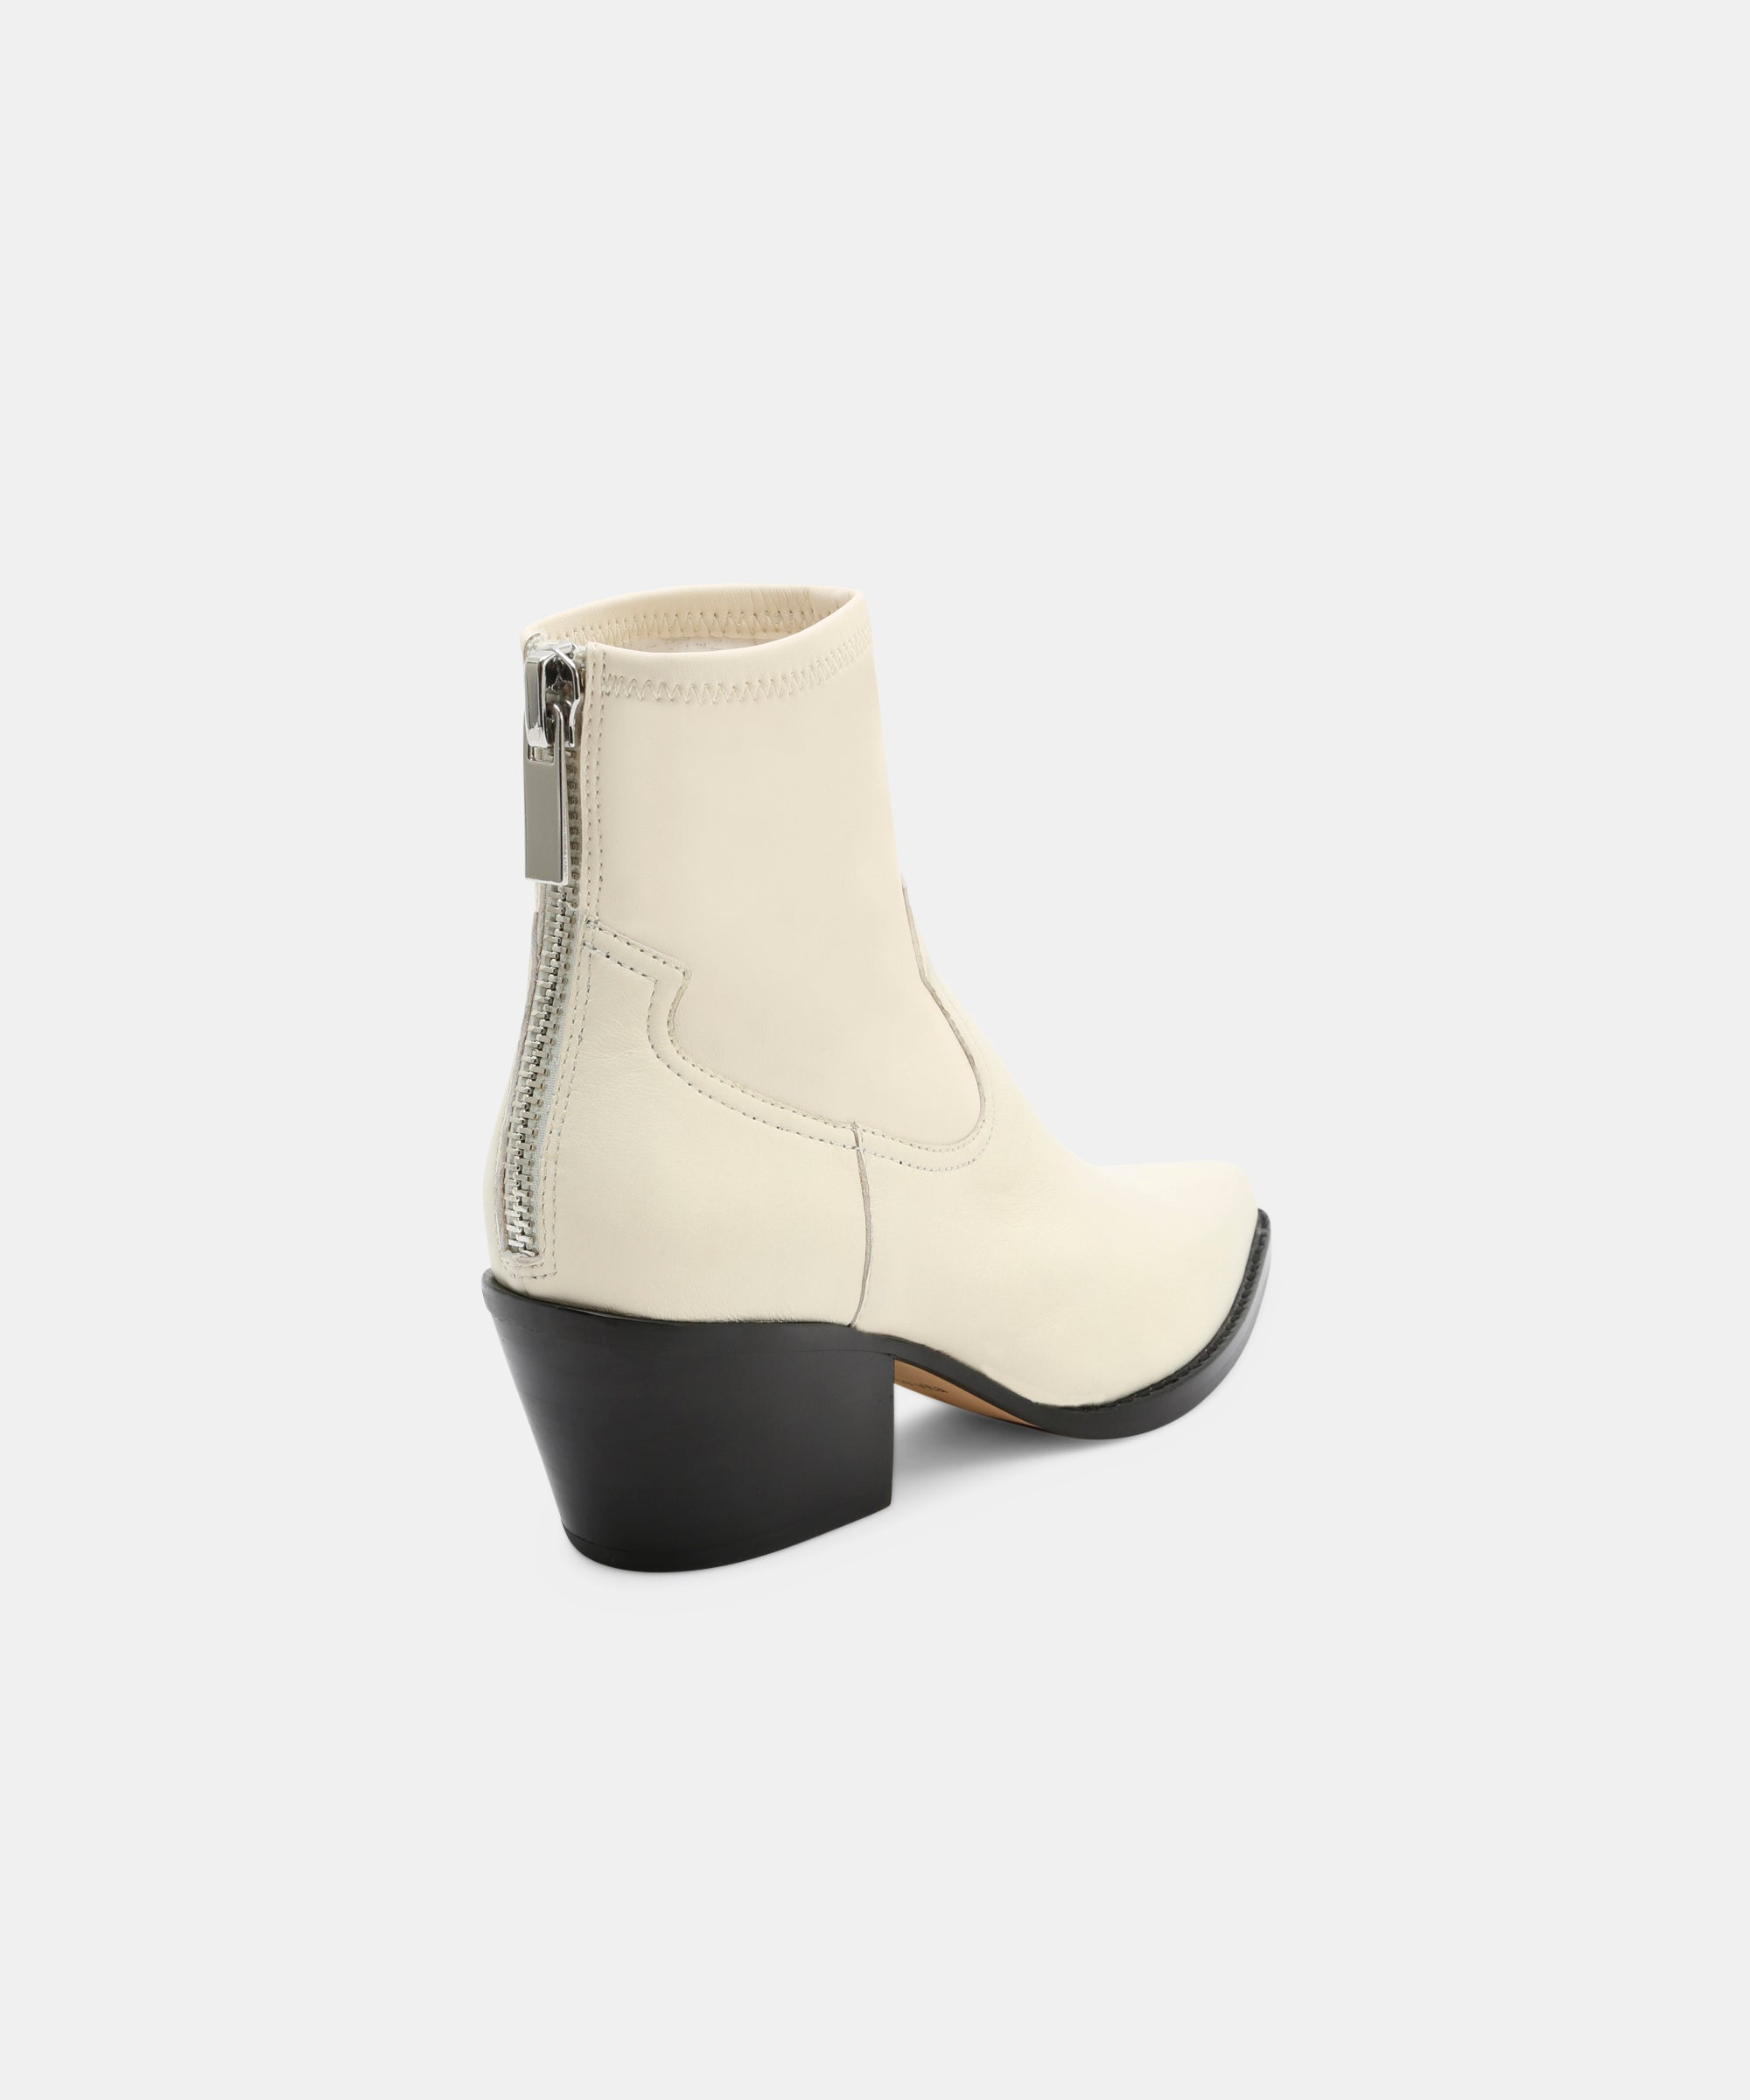 SHANTA BOOTIES IN OFF WHITE – Dolce Vita